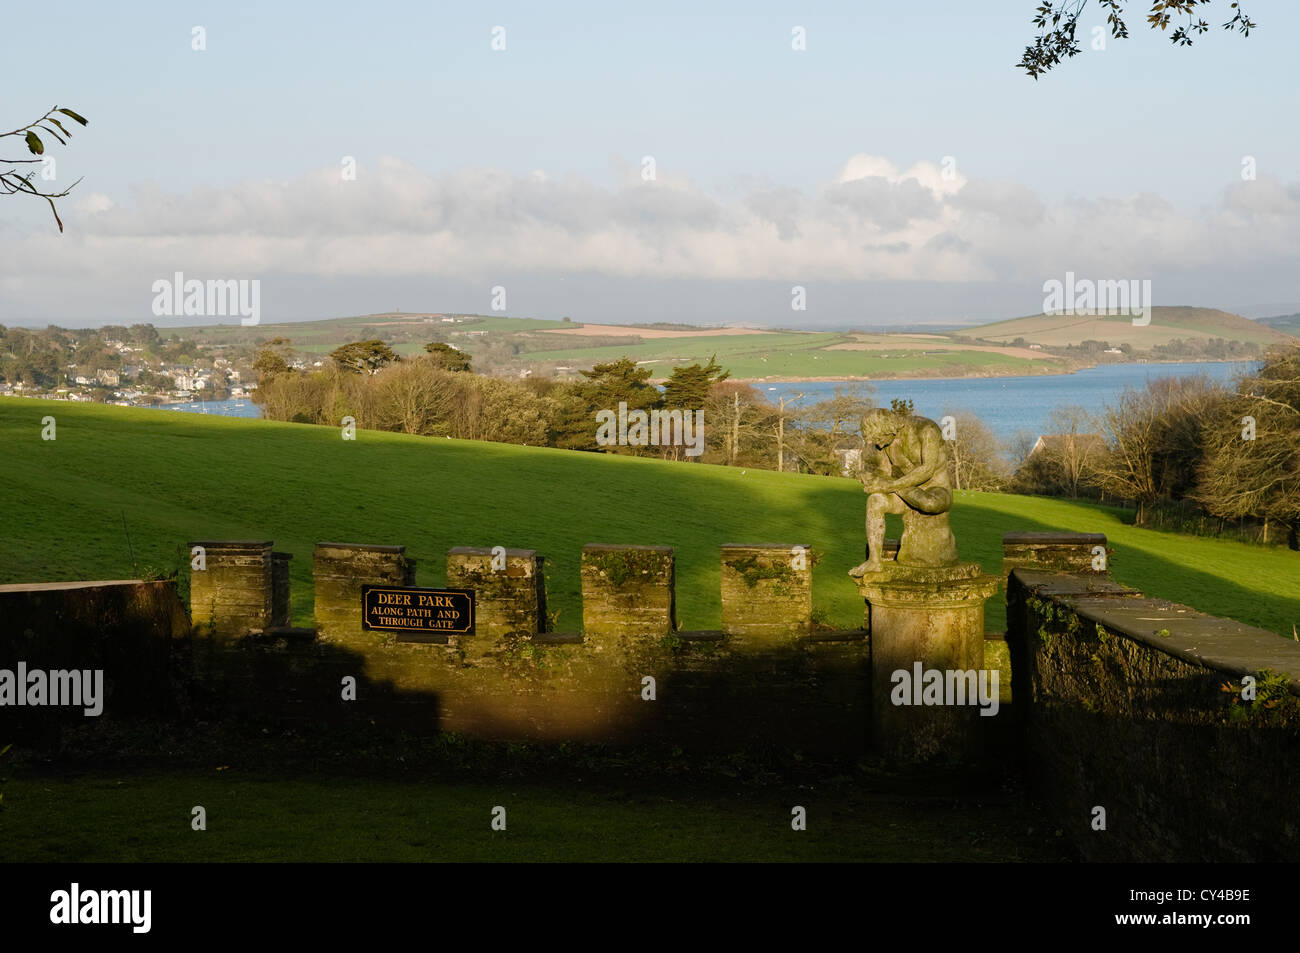 Merlons and crenels along a defensive wall at Prideaux Place overlooking the Cornish coastline - Stock Image